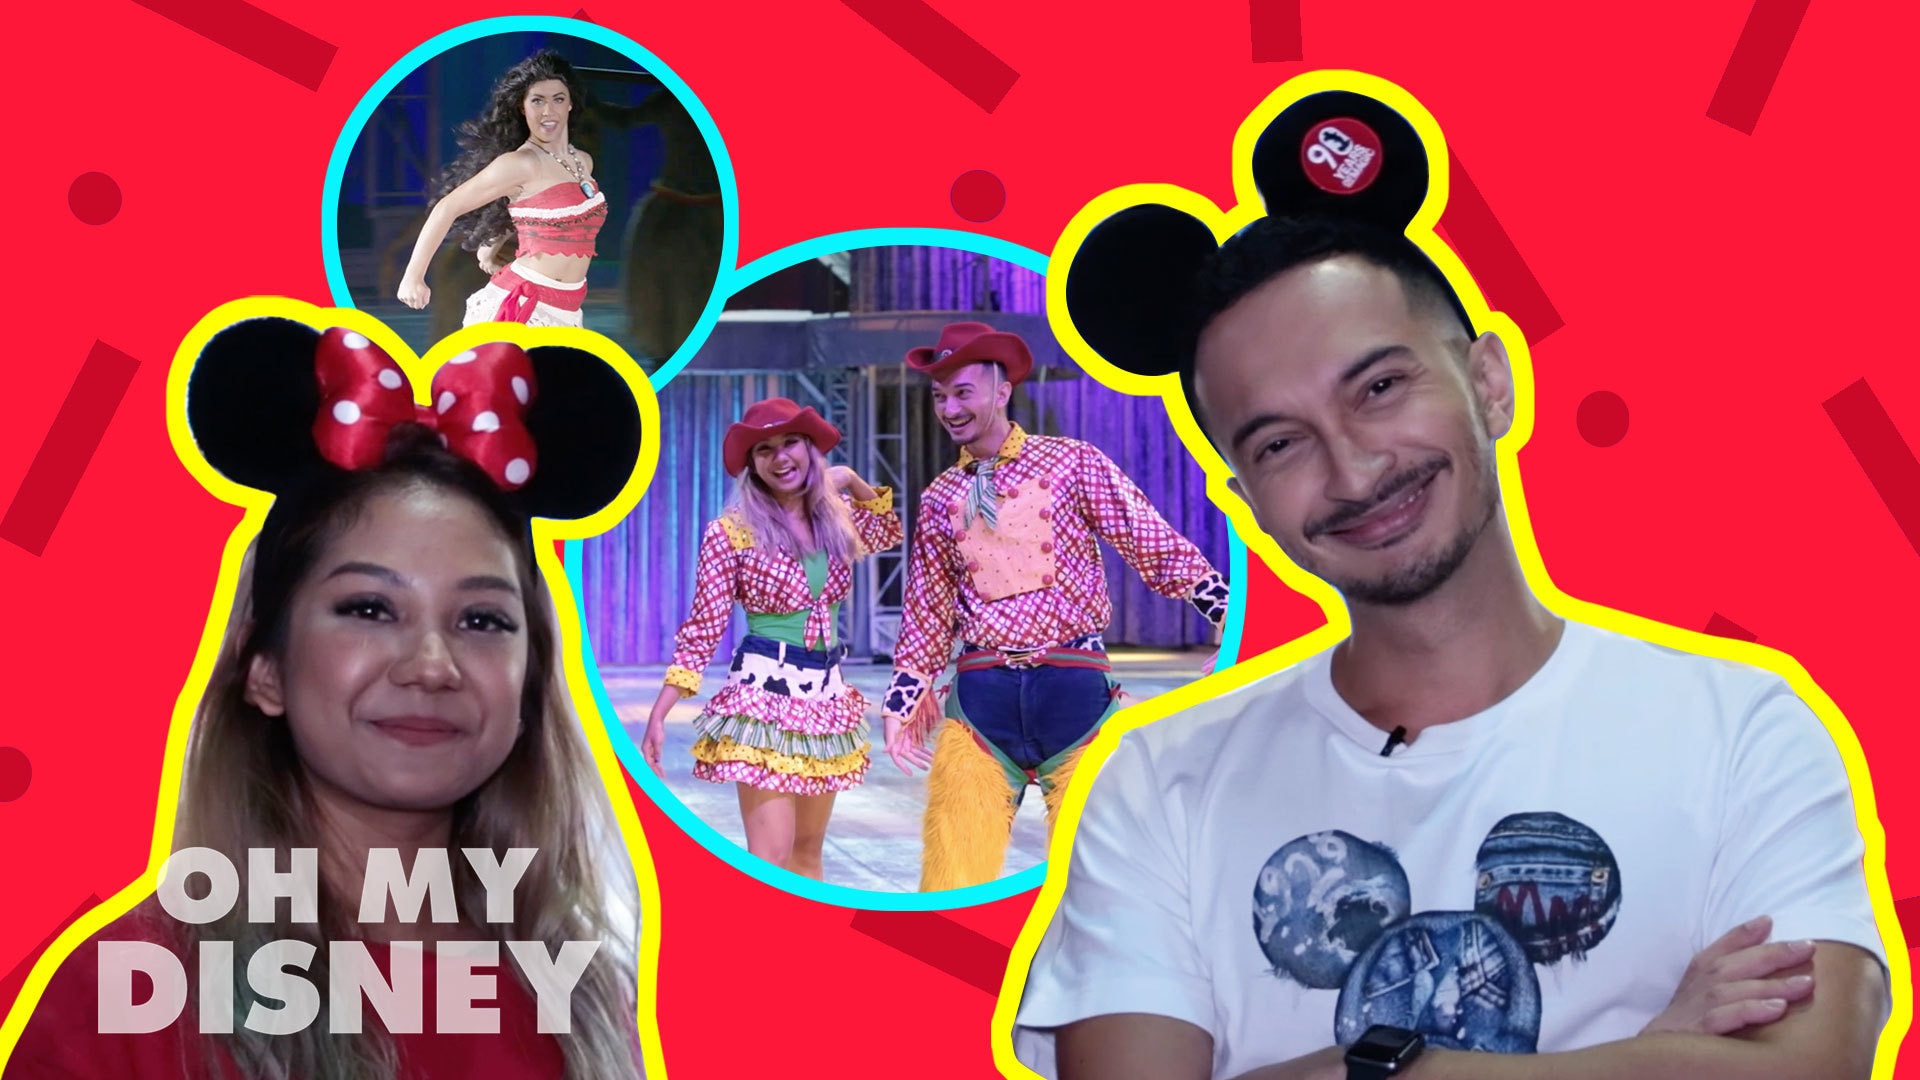 Disney Insider: Come Behind The Scenes Of Disney On Ice Presents Mickey's Super Celebration!